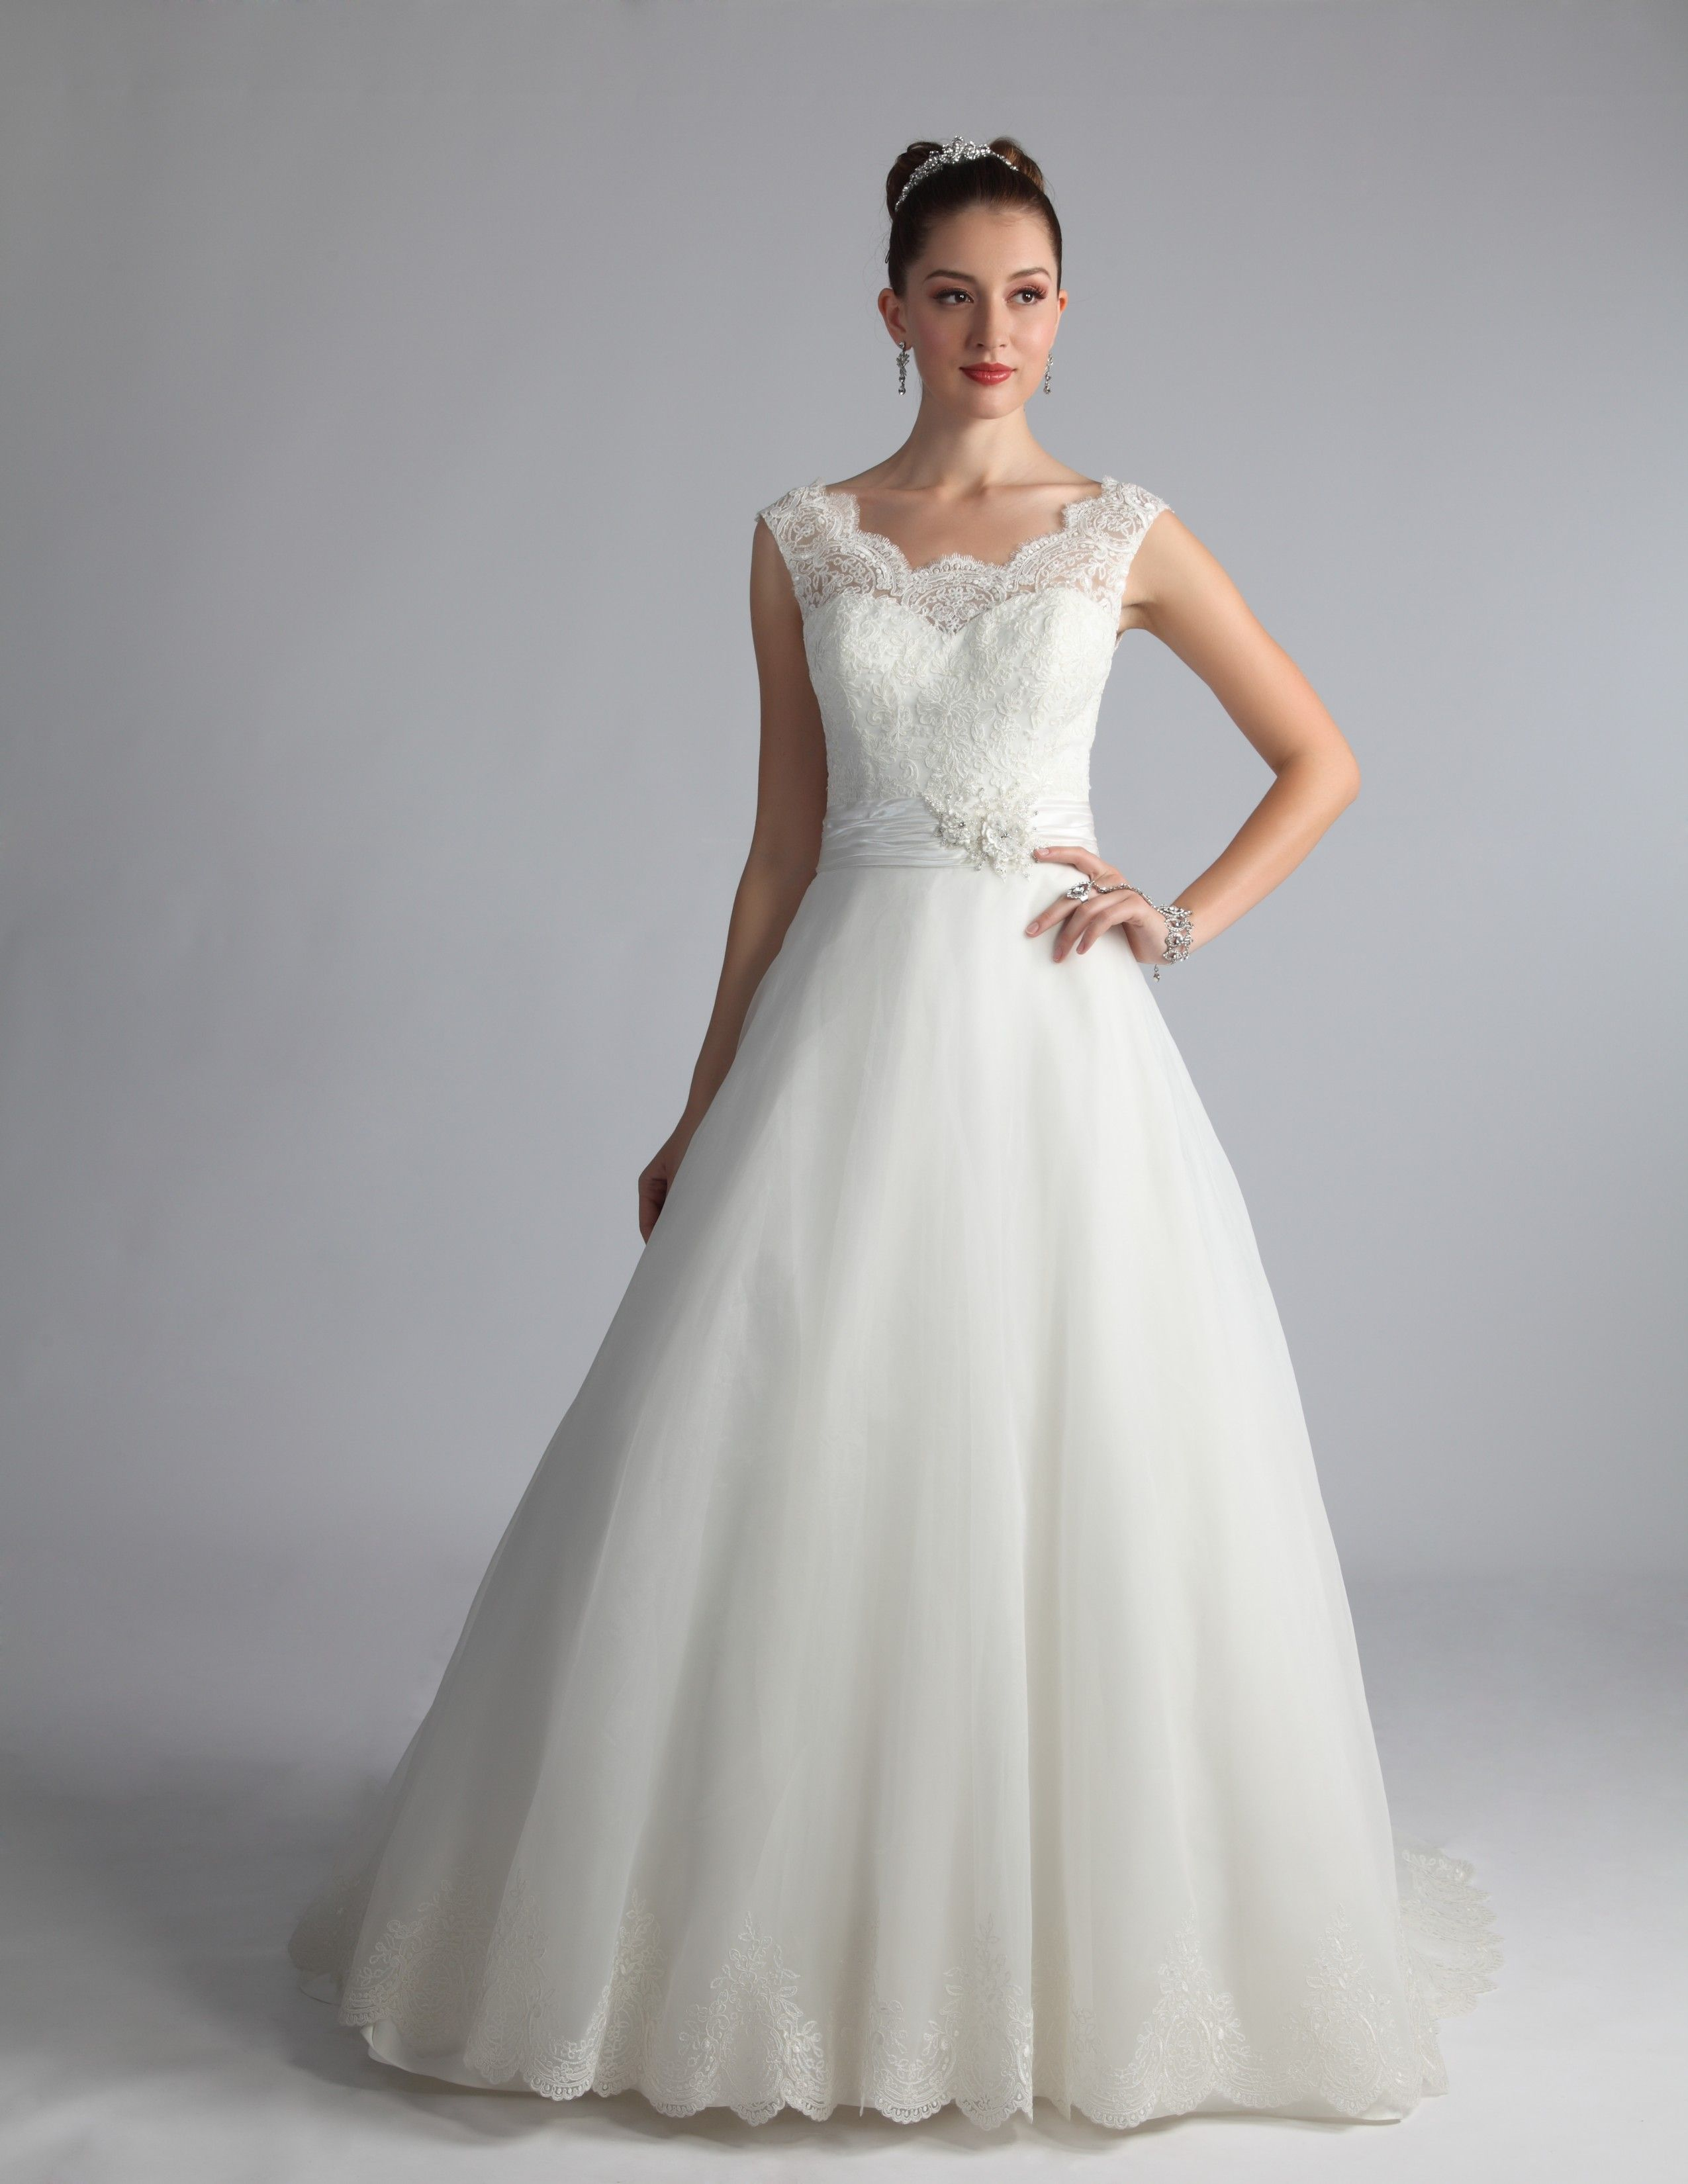 venus wedding dresses uk | Wedding